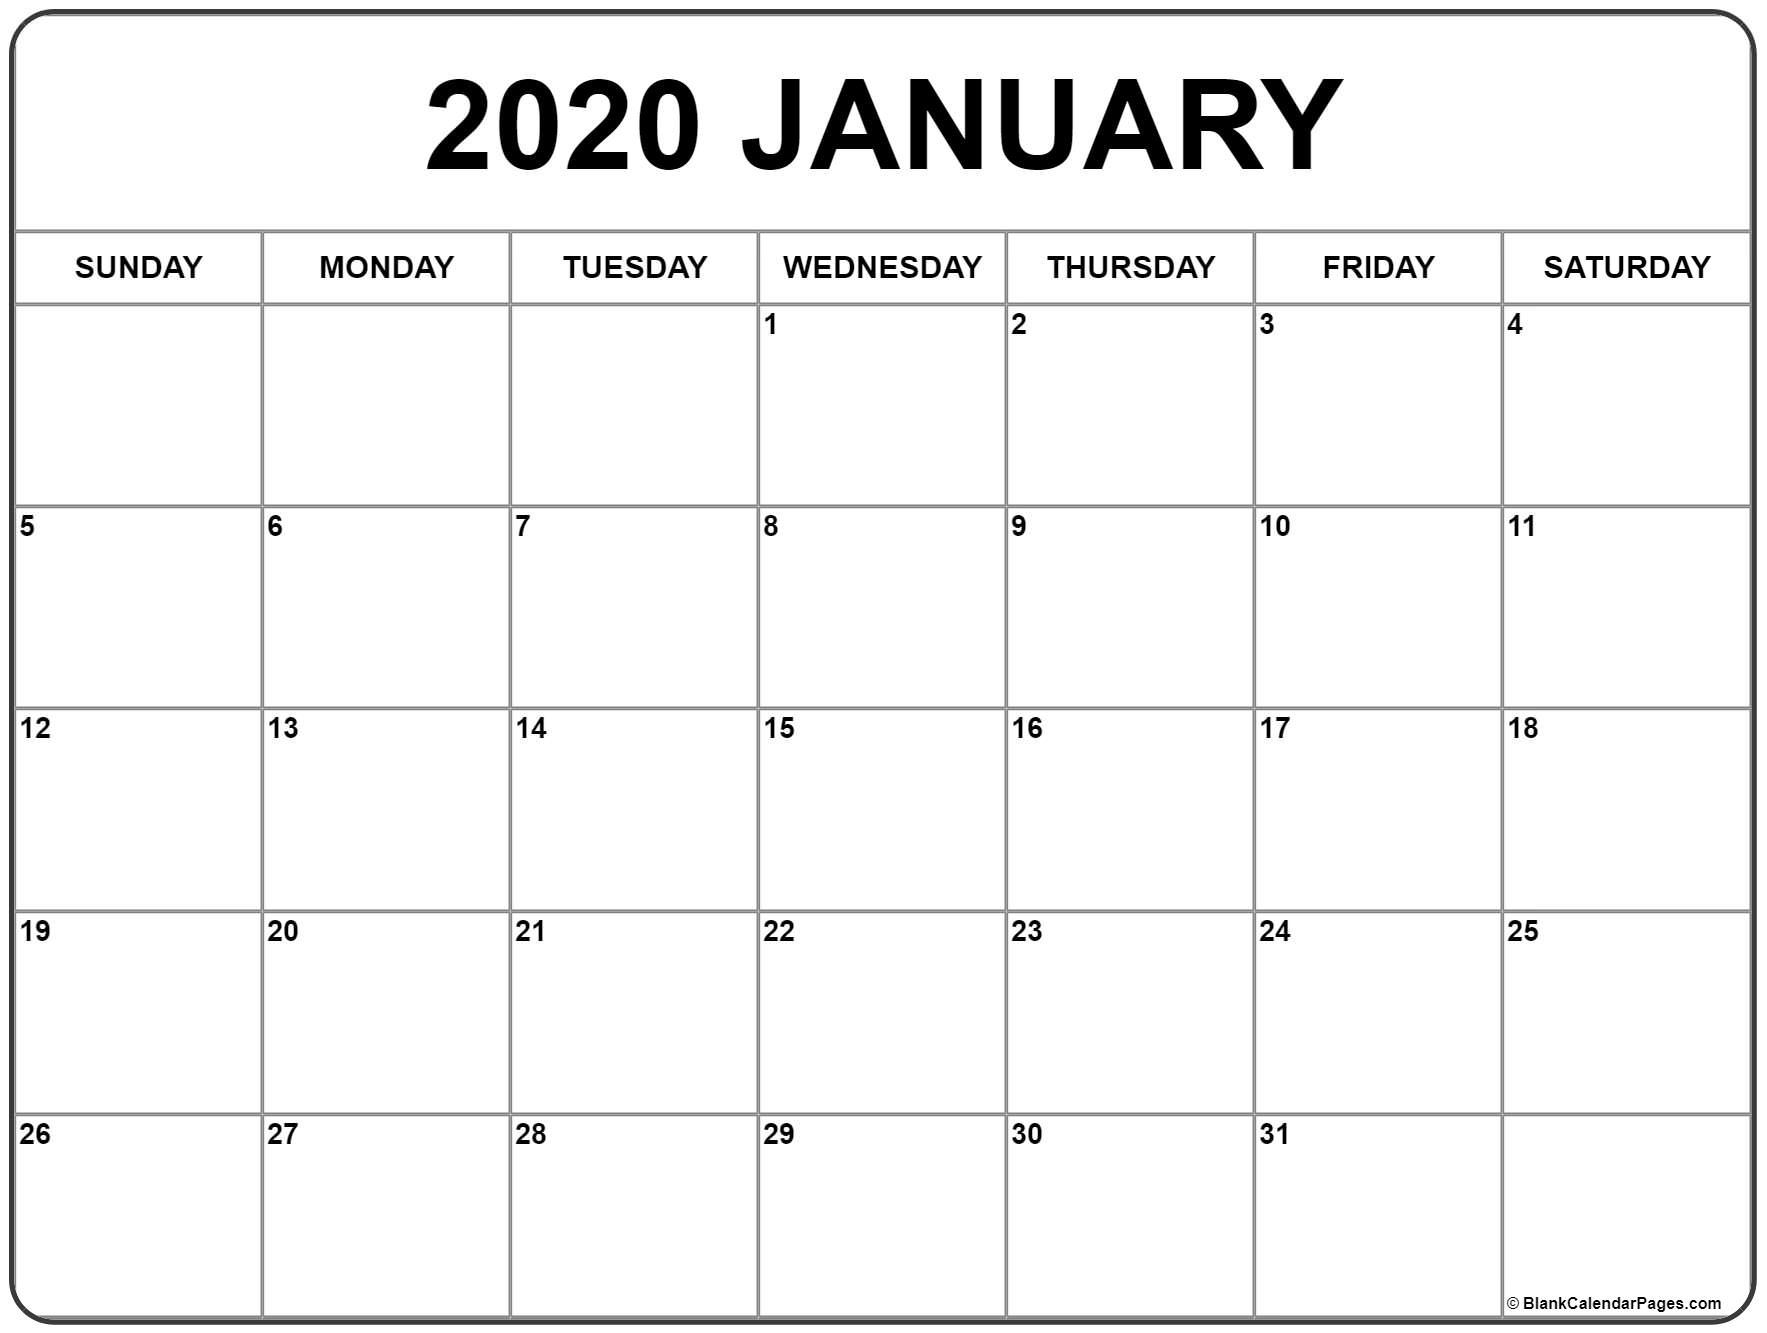 January 2020 Calendar | Free Printable Monthly Calendars-January 2020 Calendar Hindu